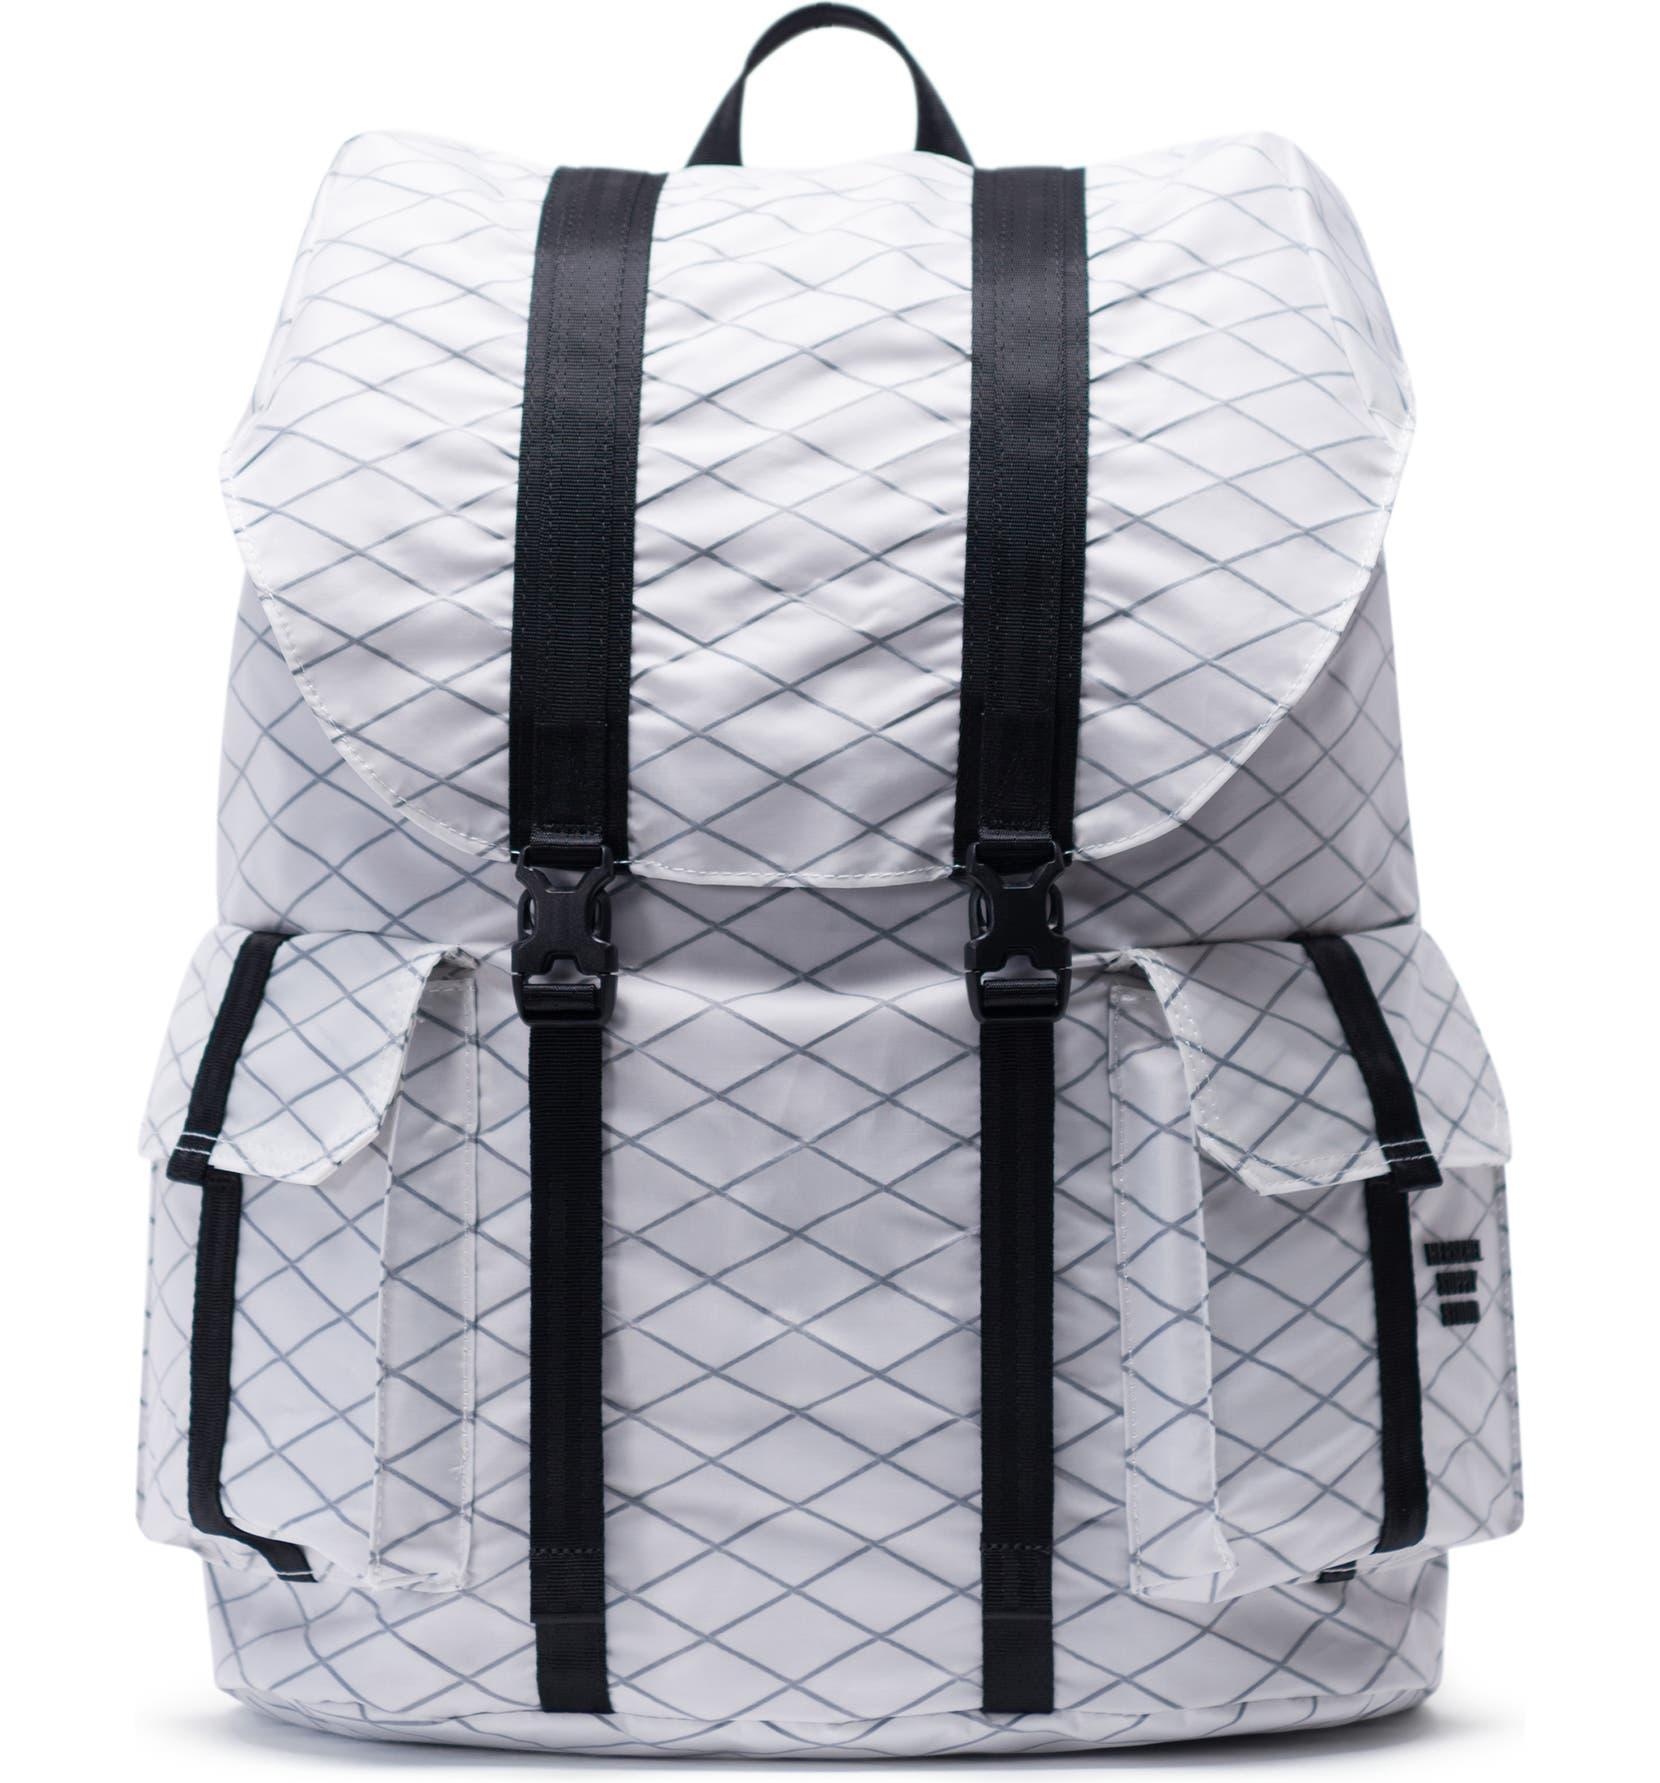 6f275fe1bbf Herschel Supply Co. Dawson X-Large Studio Collection Backpack ...